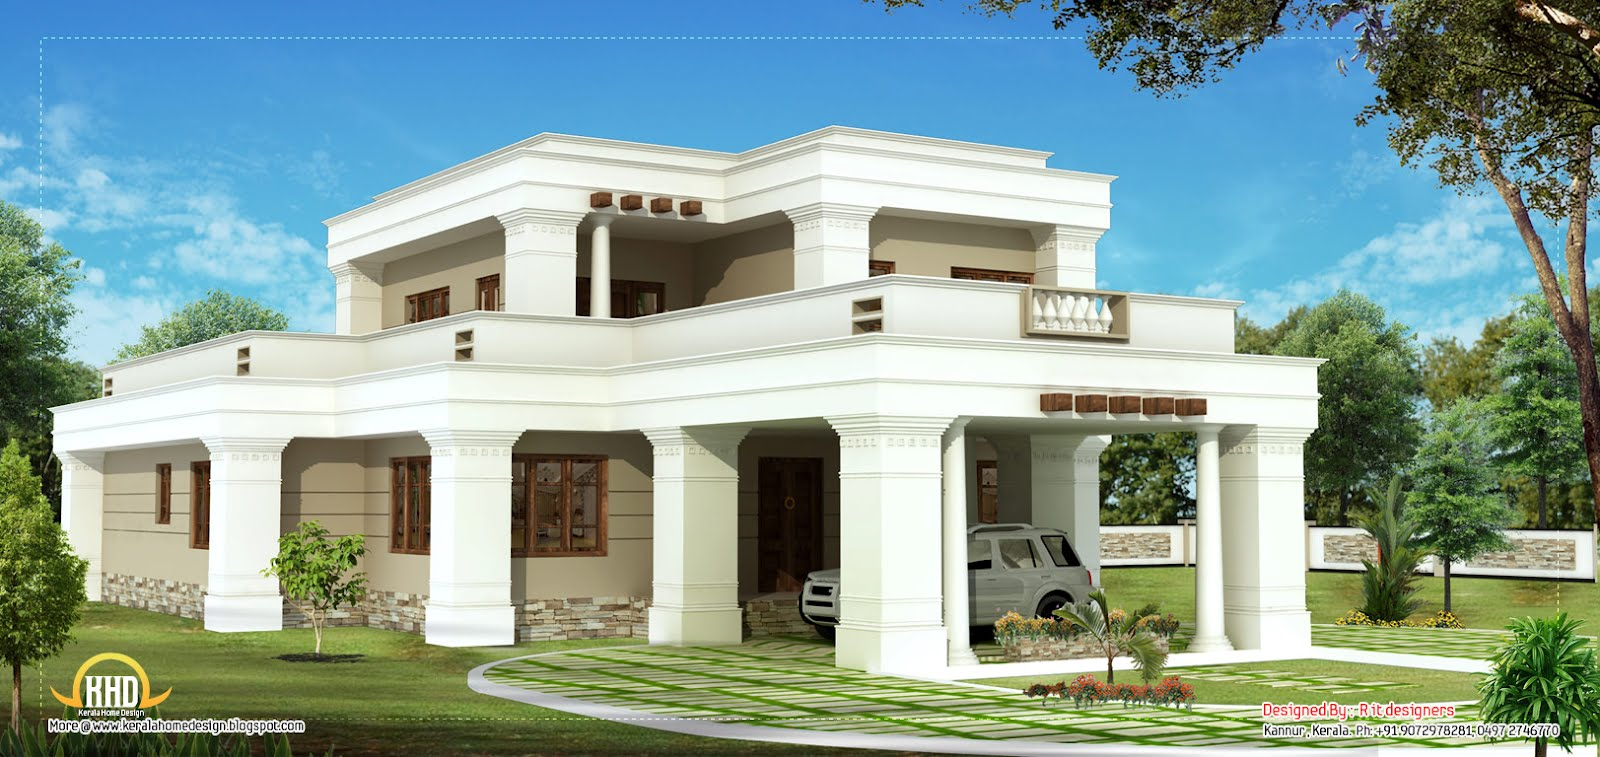 Double Story Square Home Design 2615 Sq Ft Kerala